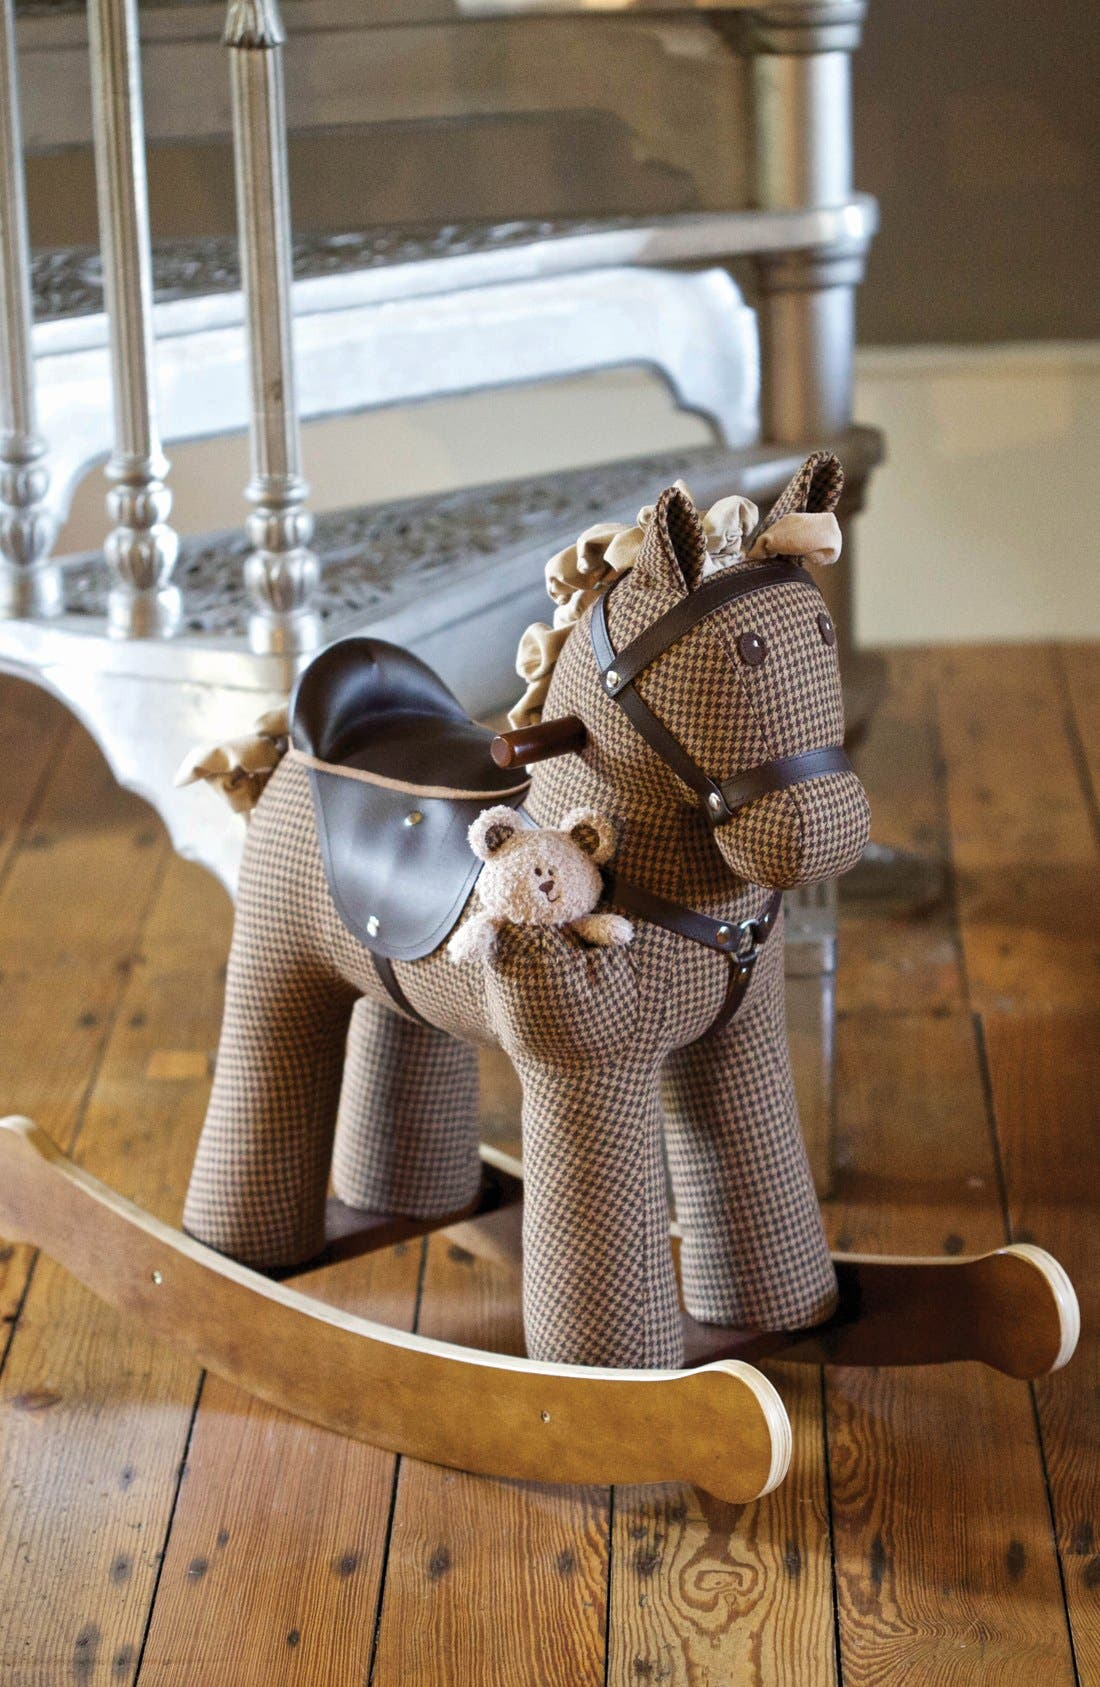 Rocking Horse & Stuffed Animal,                             Alternate thumbnail 3, color,                             Houndstooth